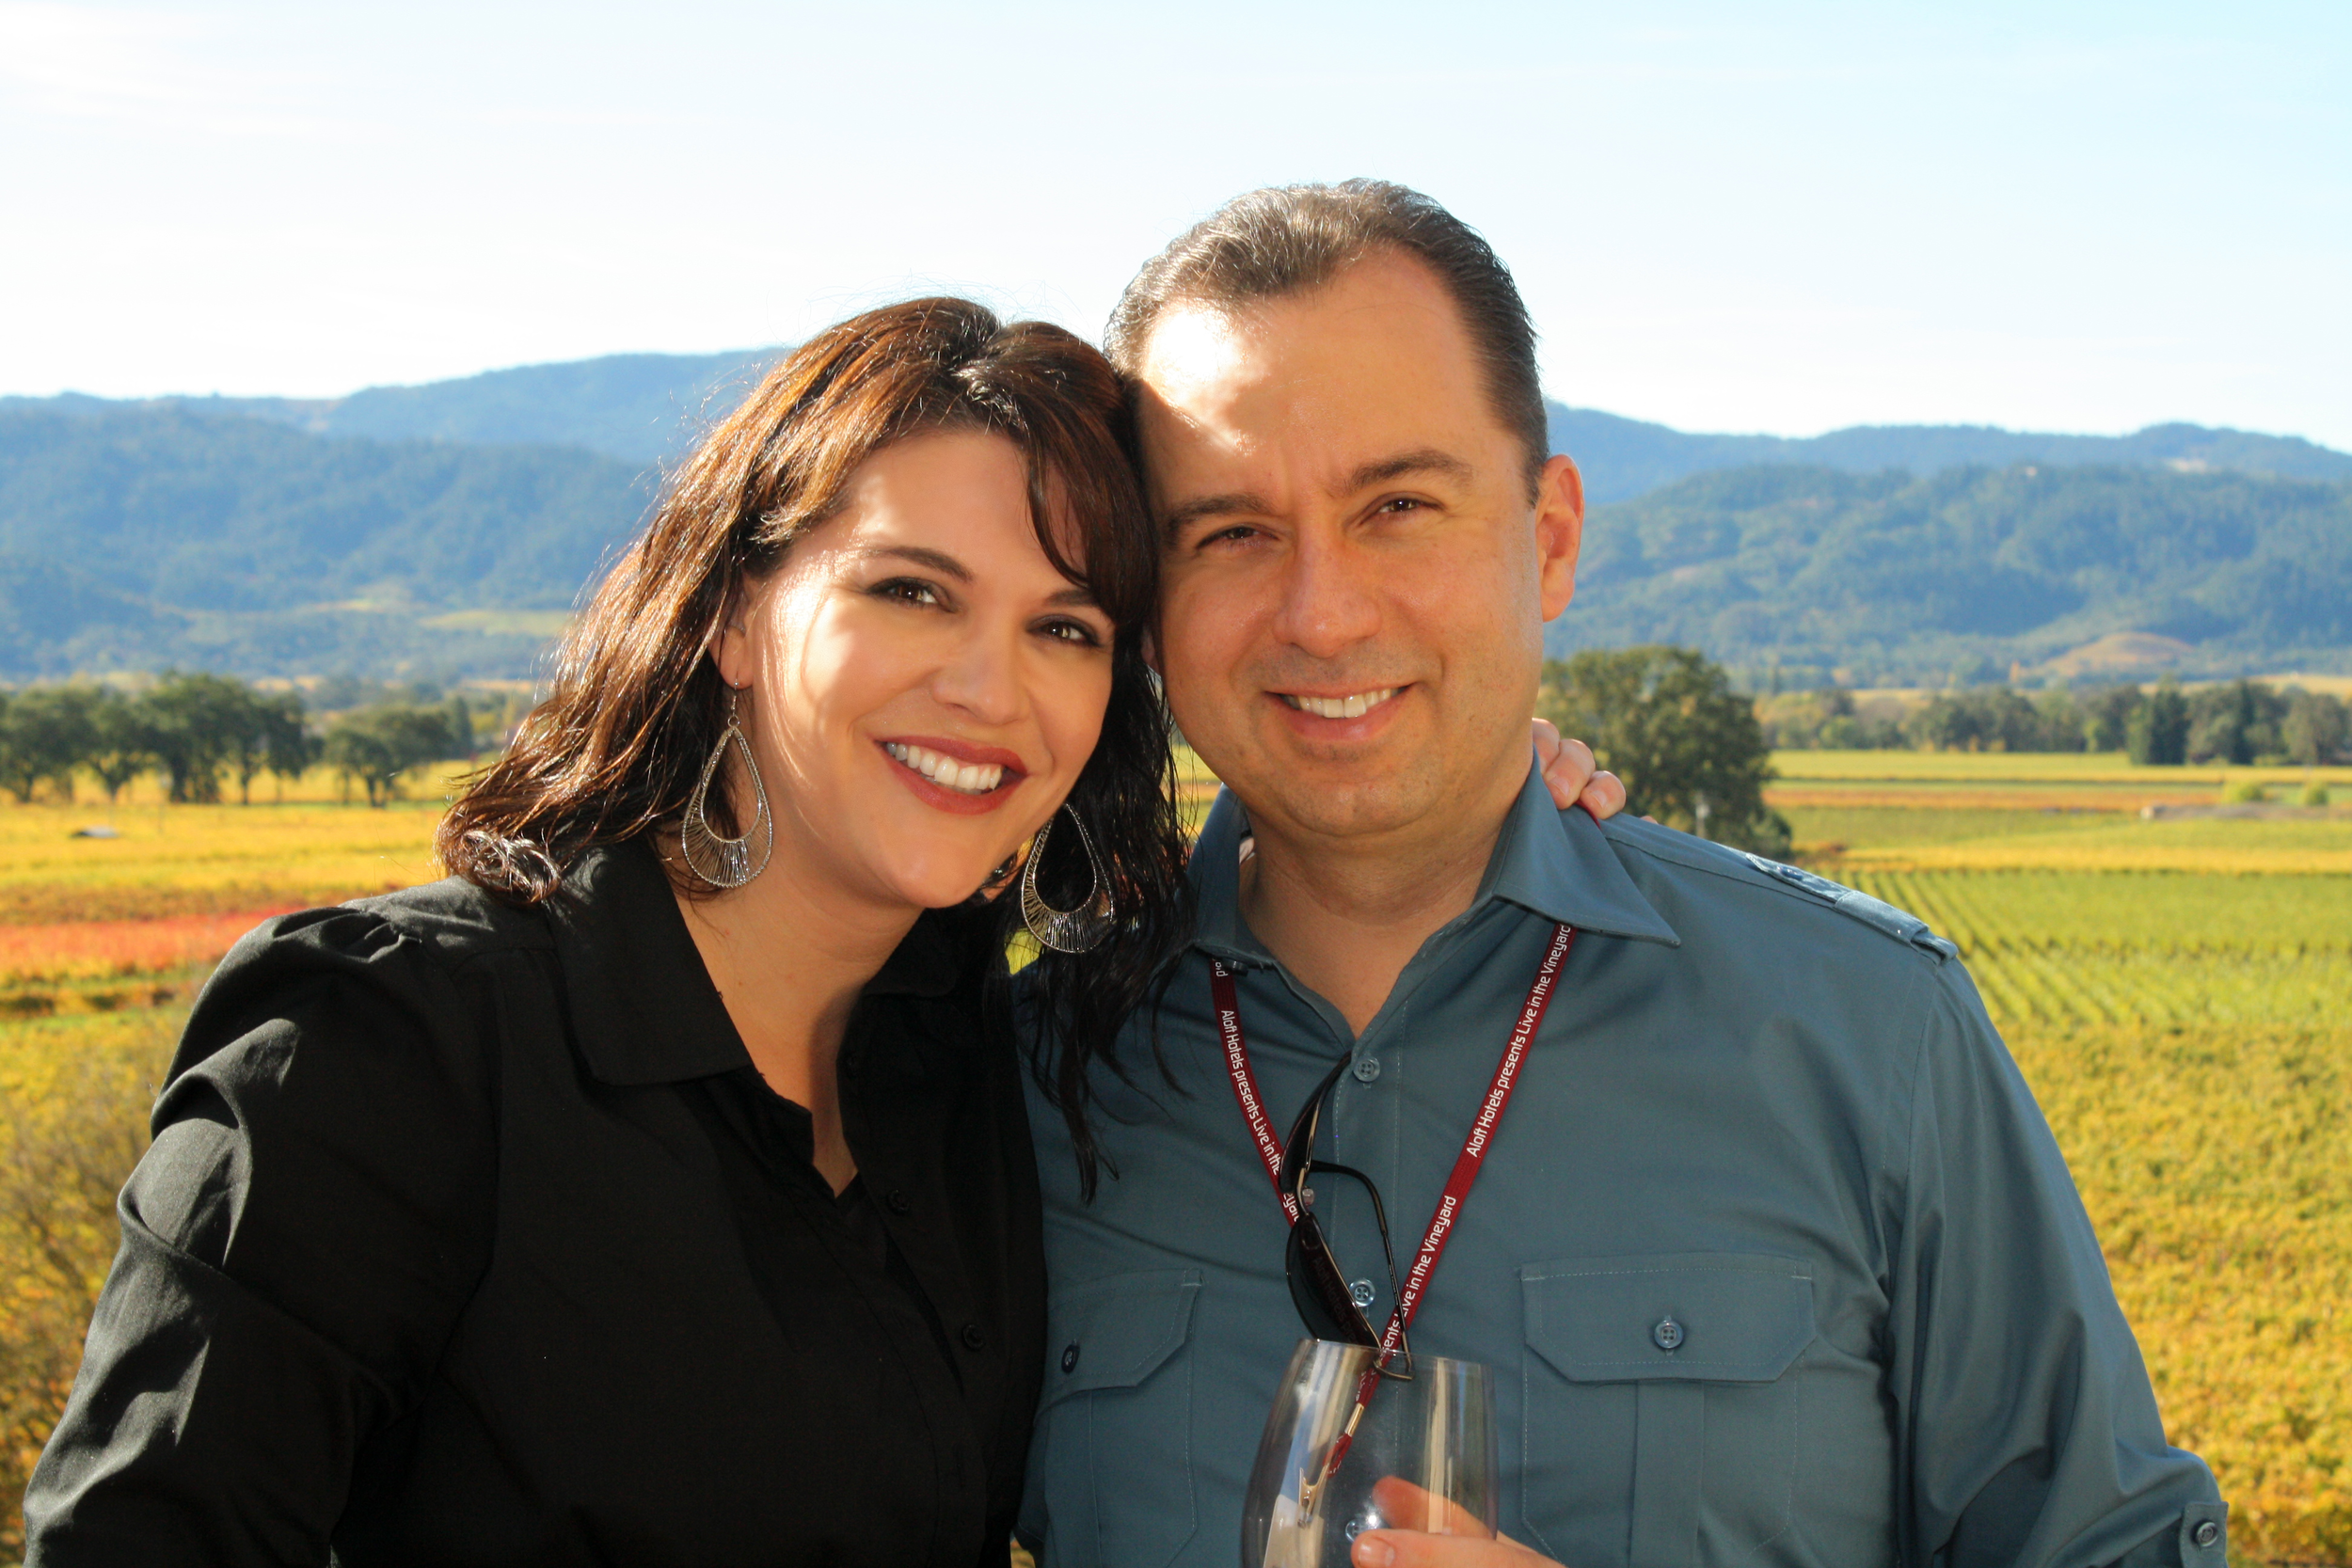 Heather & Brian in, where else, Napa Valley.